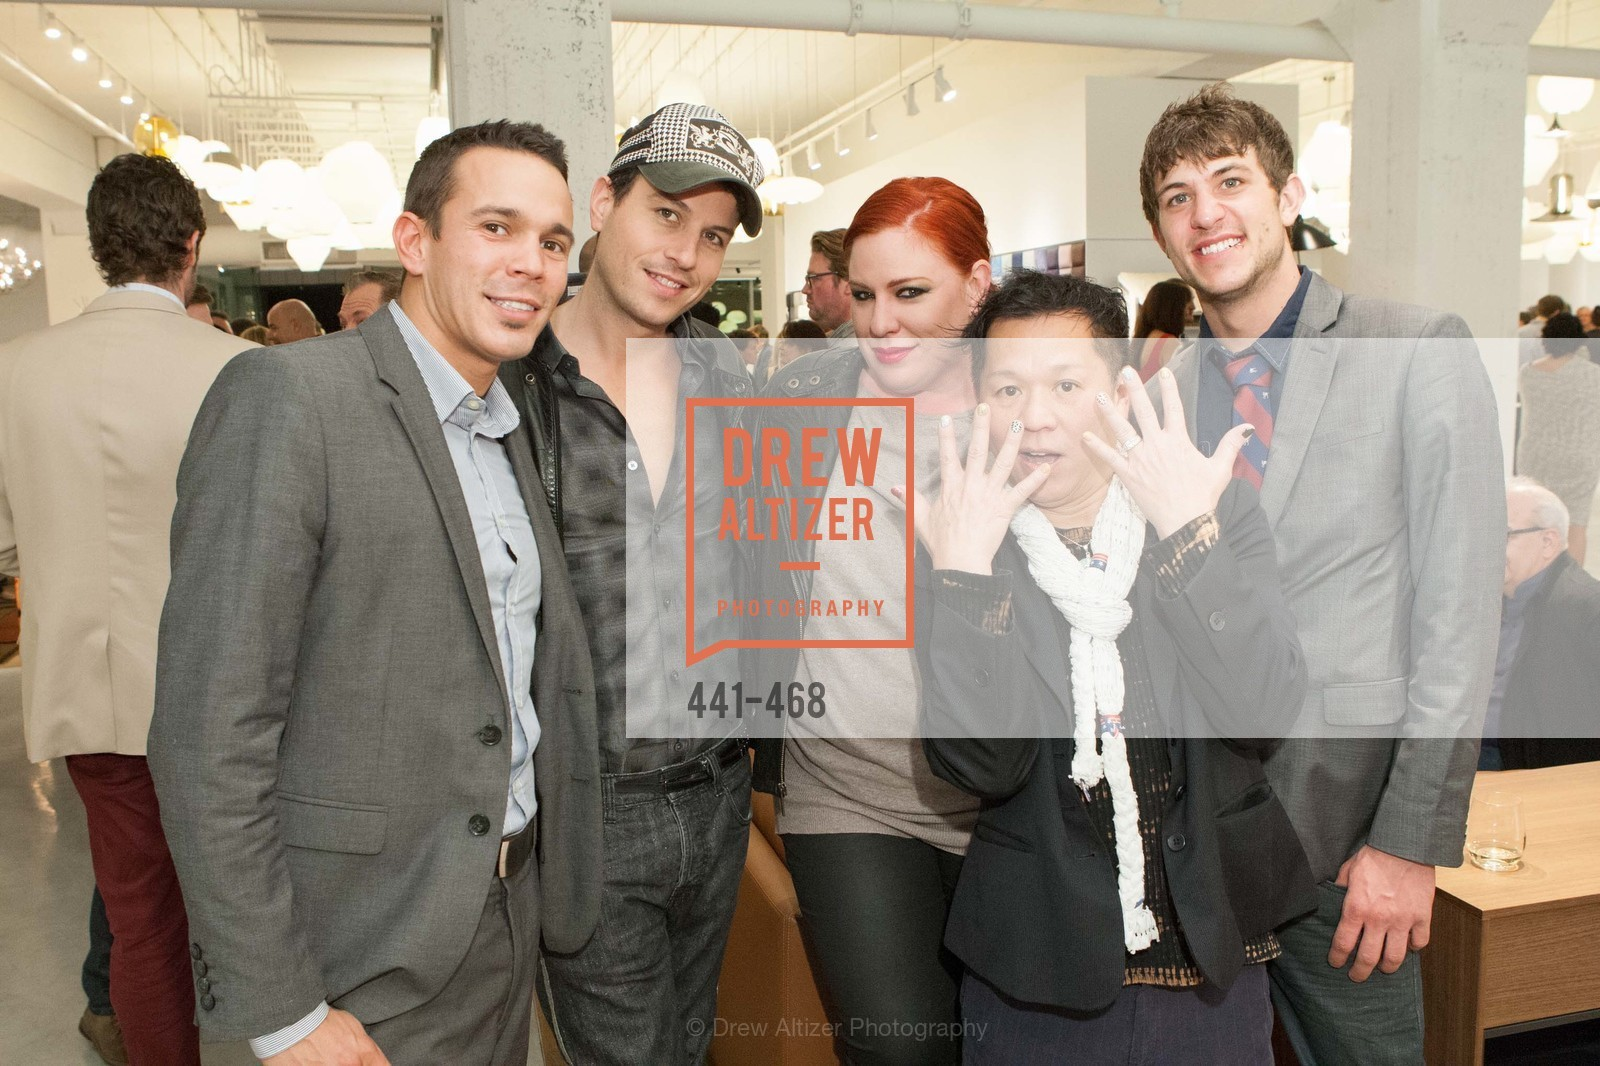 Mykul Chretein, Traver Raims, Diana Coney, Baby Chic, Aaron Muraski, DESIGN WITHIN REACH Studio Opening, US. US, January 21st, 2014,Drew Altizer, Drew Altizer Photography, full-service event agency, private events, San Francisco photographer, photographer California